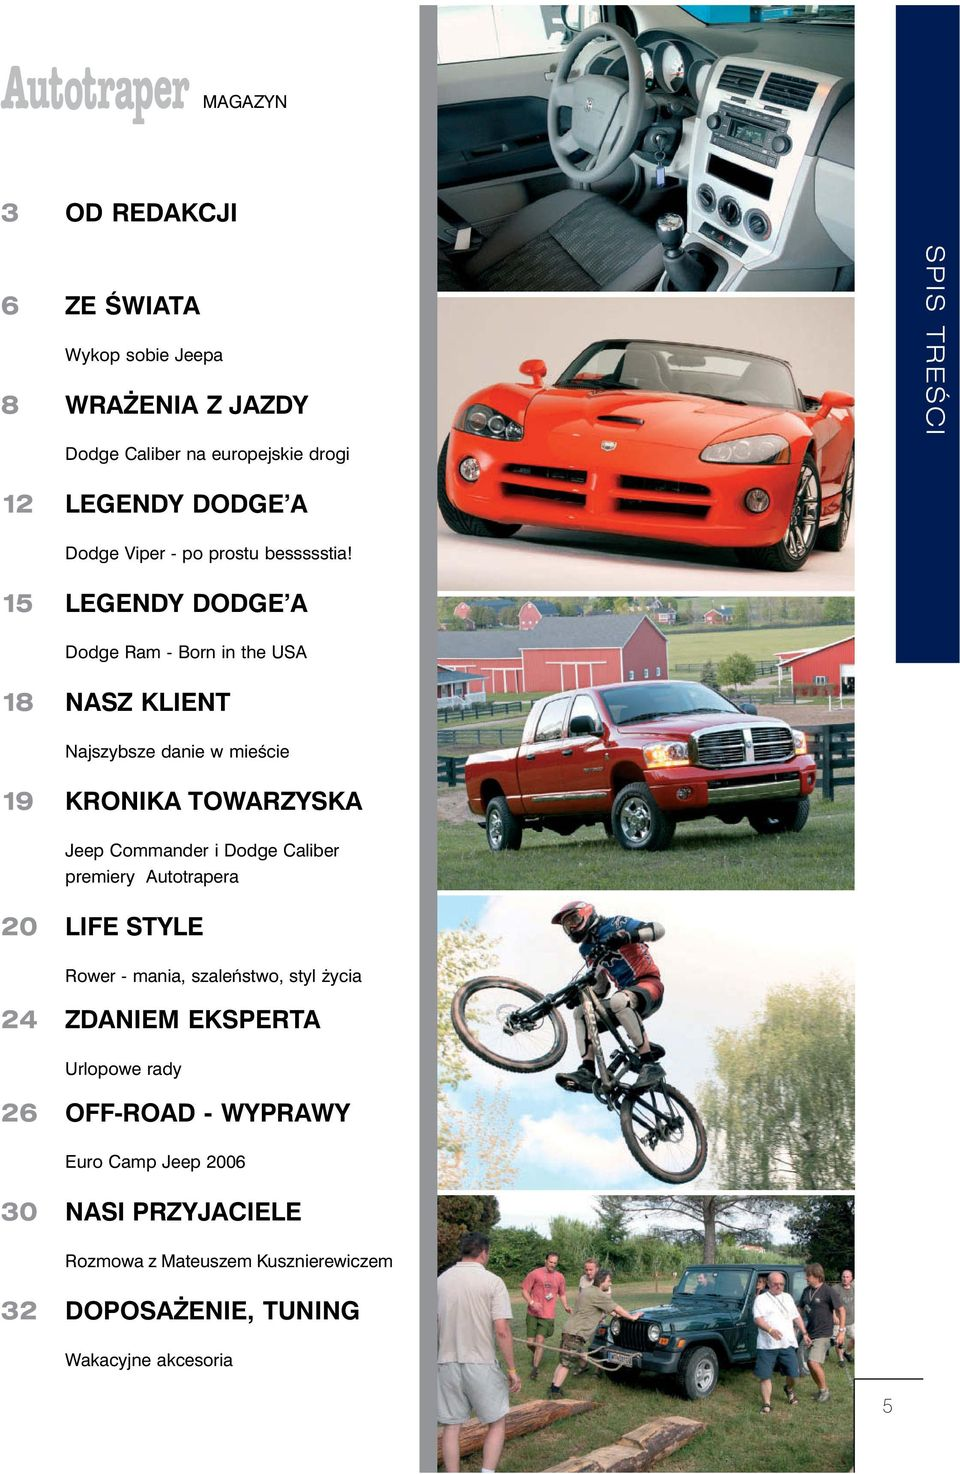 15 LEGENDY DODGE A Dodge Ram - Born in the USA 18 NASZ KLIENT Najszybsze danie w mieêcie 19 KRONIKA TOWARZYSKA Jeep Commander i Dodge